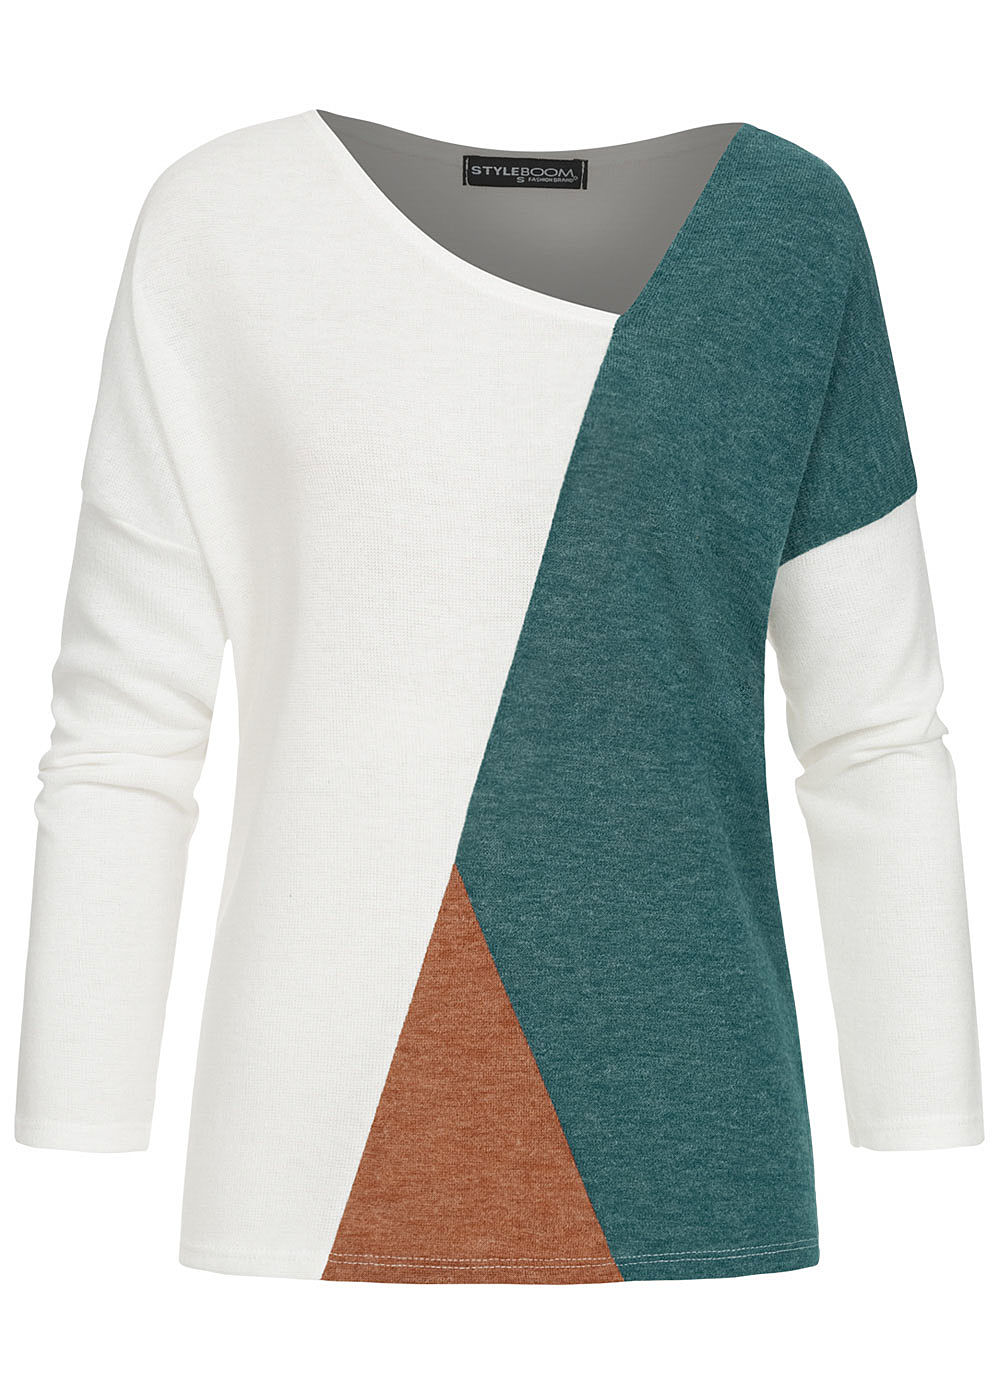 Styleboom Fashion Damen Colorblock Fledermausarm Sweater weiss petrol braun - Art.-Nr.: 19126003